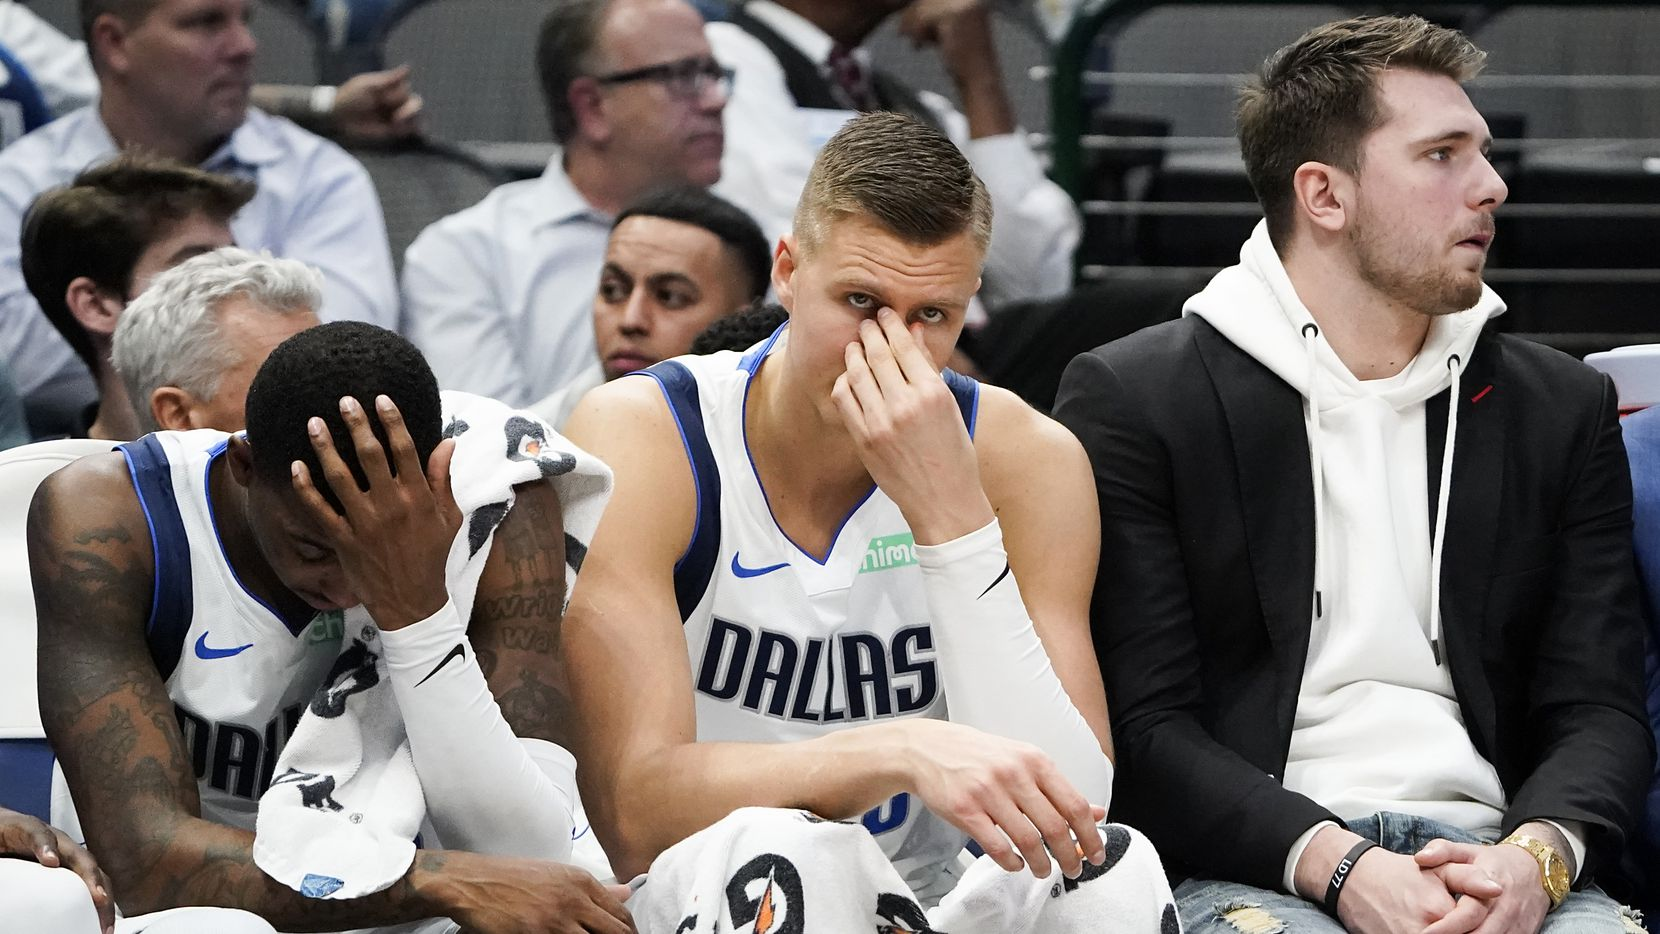 Injured Dallas Mavericks guard Luka Doncic (right) sits on the bench with forward Kristaps Porzingis (center) and guard Delon Wright (left) during the second half of an NBA basketball game against the Memphis Grizzlies at American Airlines Center on Wednesday, Feb. 5, 2020, in Dallas.